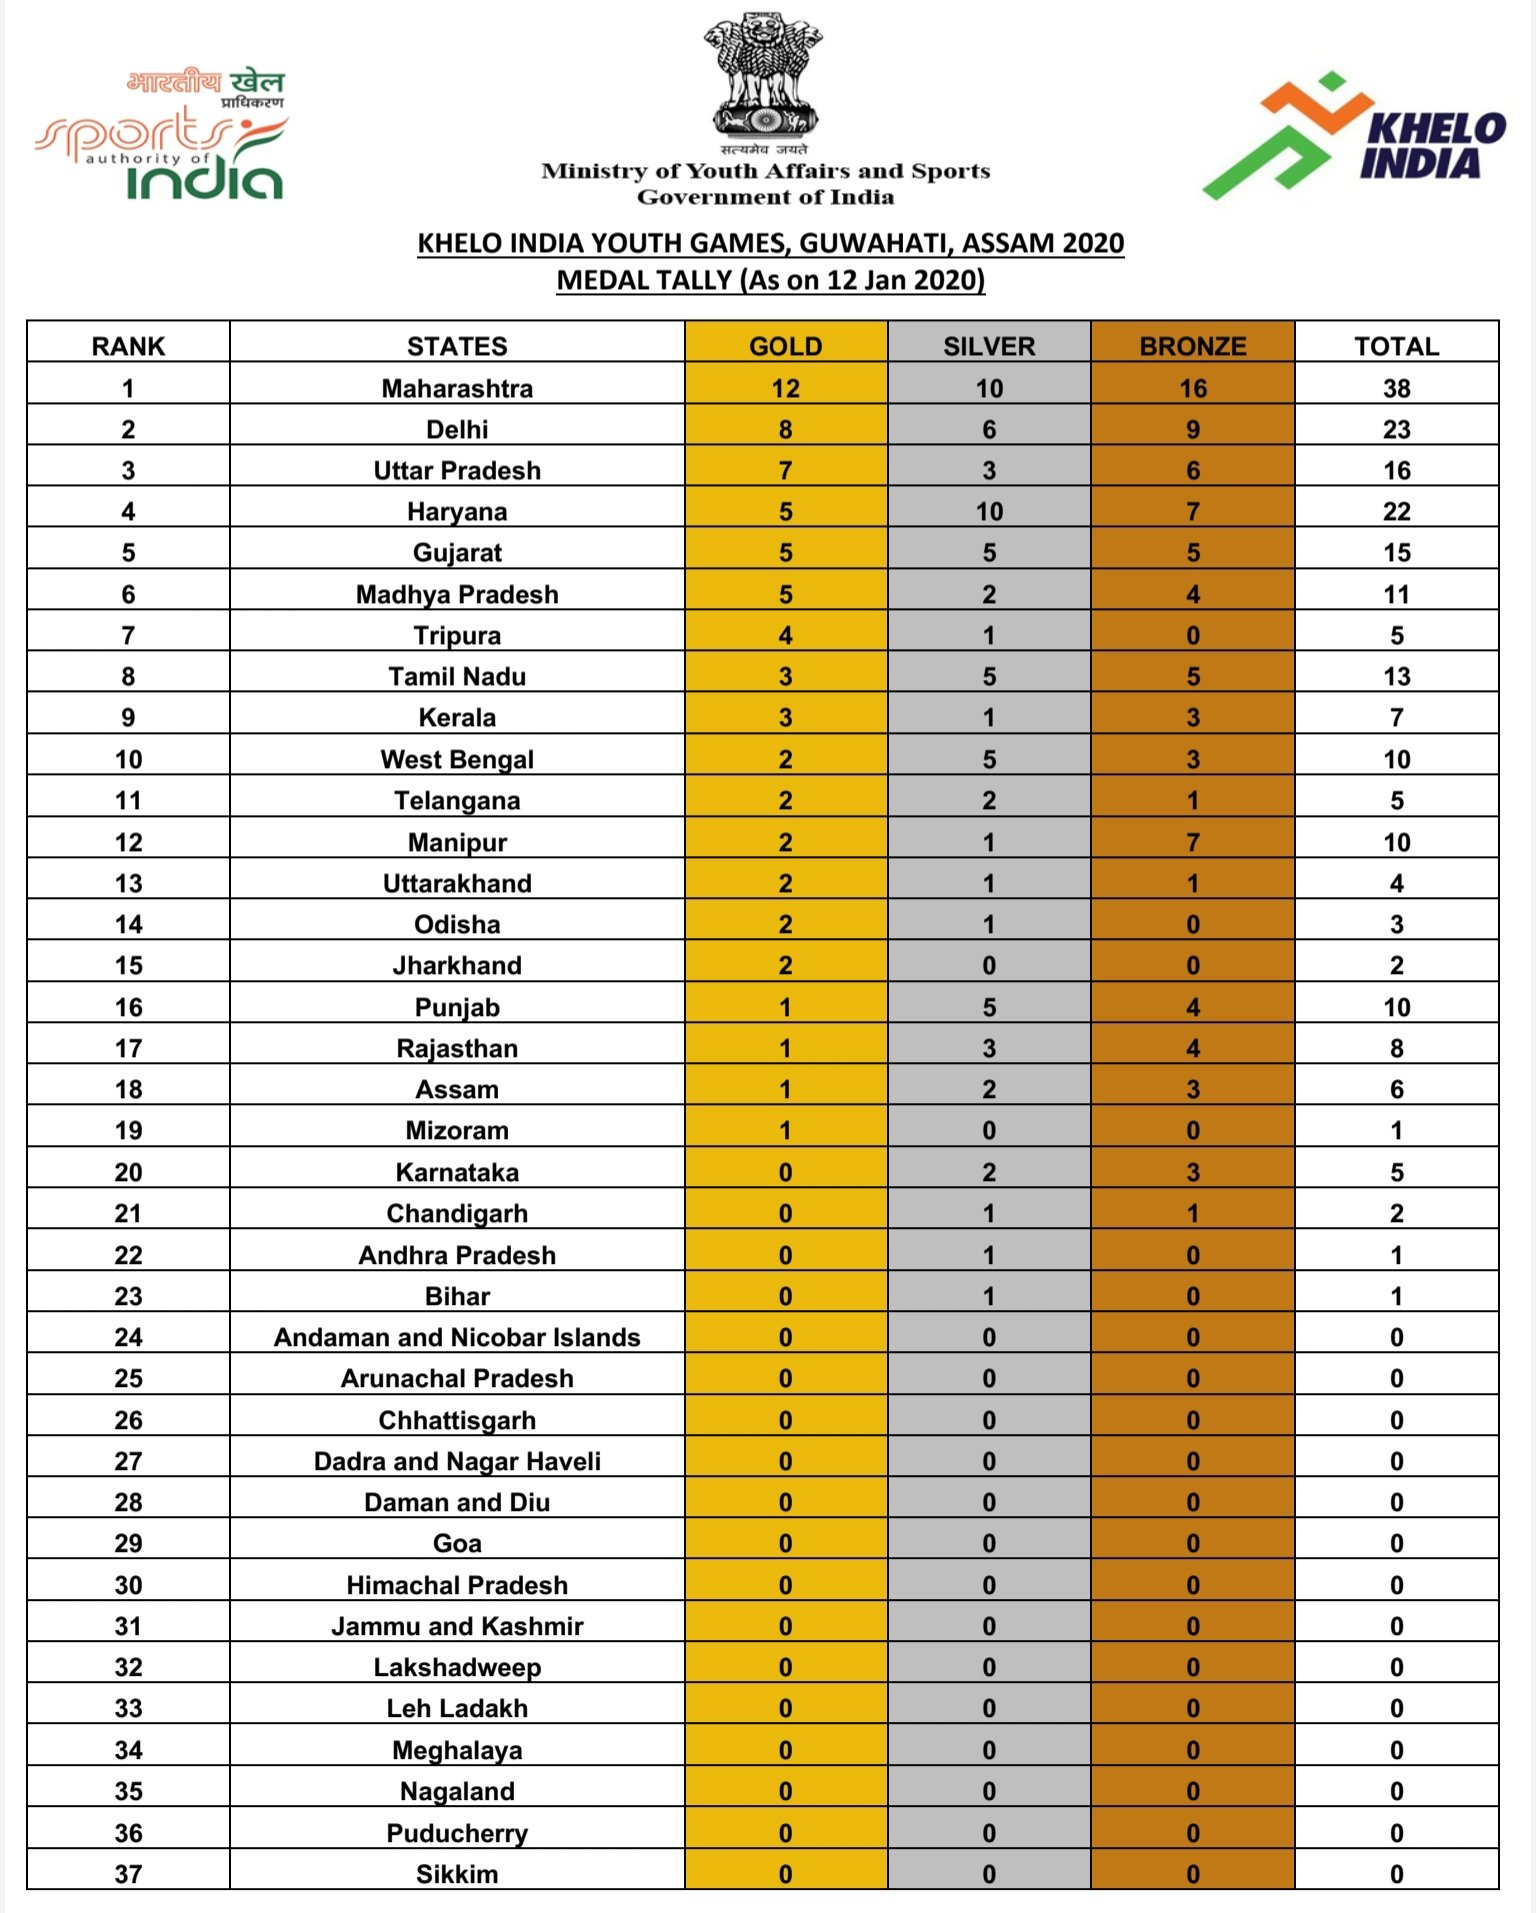 Khelo India Medal Tally